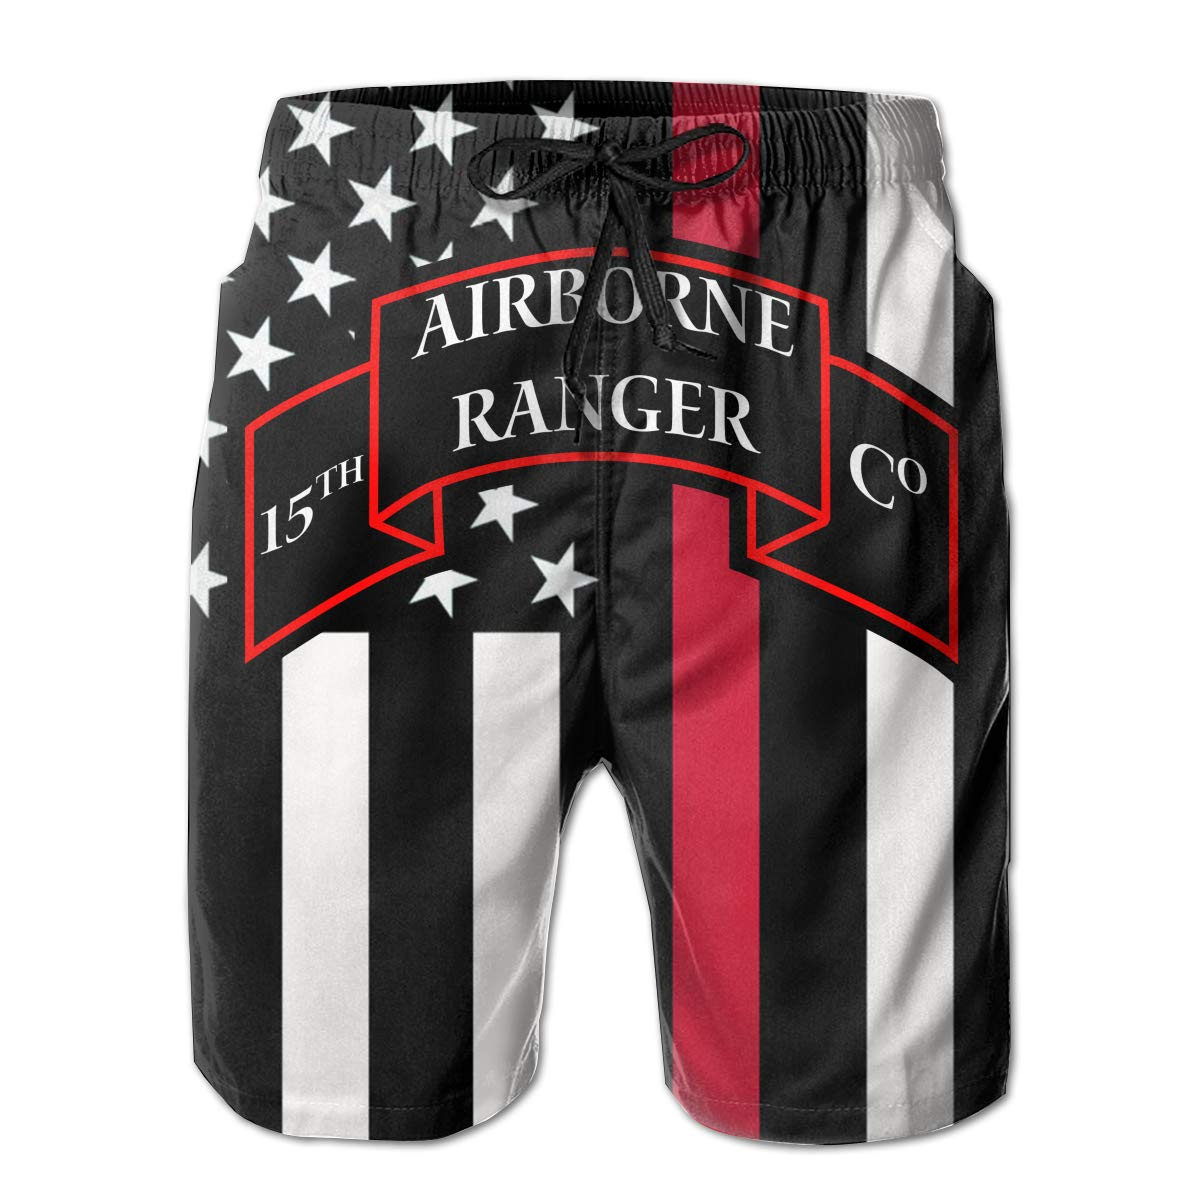 Hdecrr FFRE 15TH Airborne Ranger Company Mens Summer Casual Swim Trunks Shorts Quick Dry Swim Trunks with Pockets